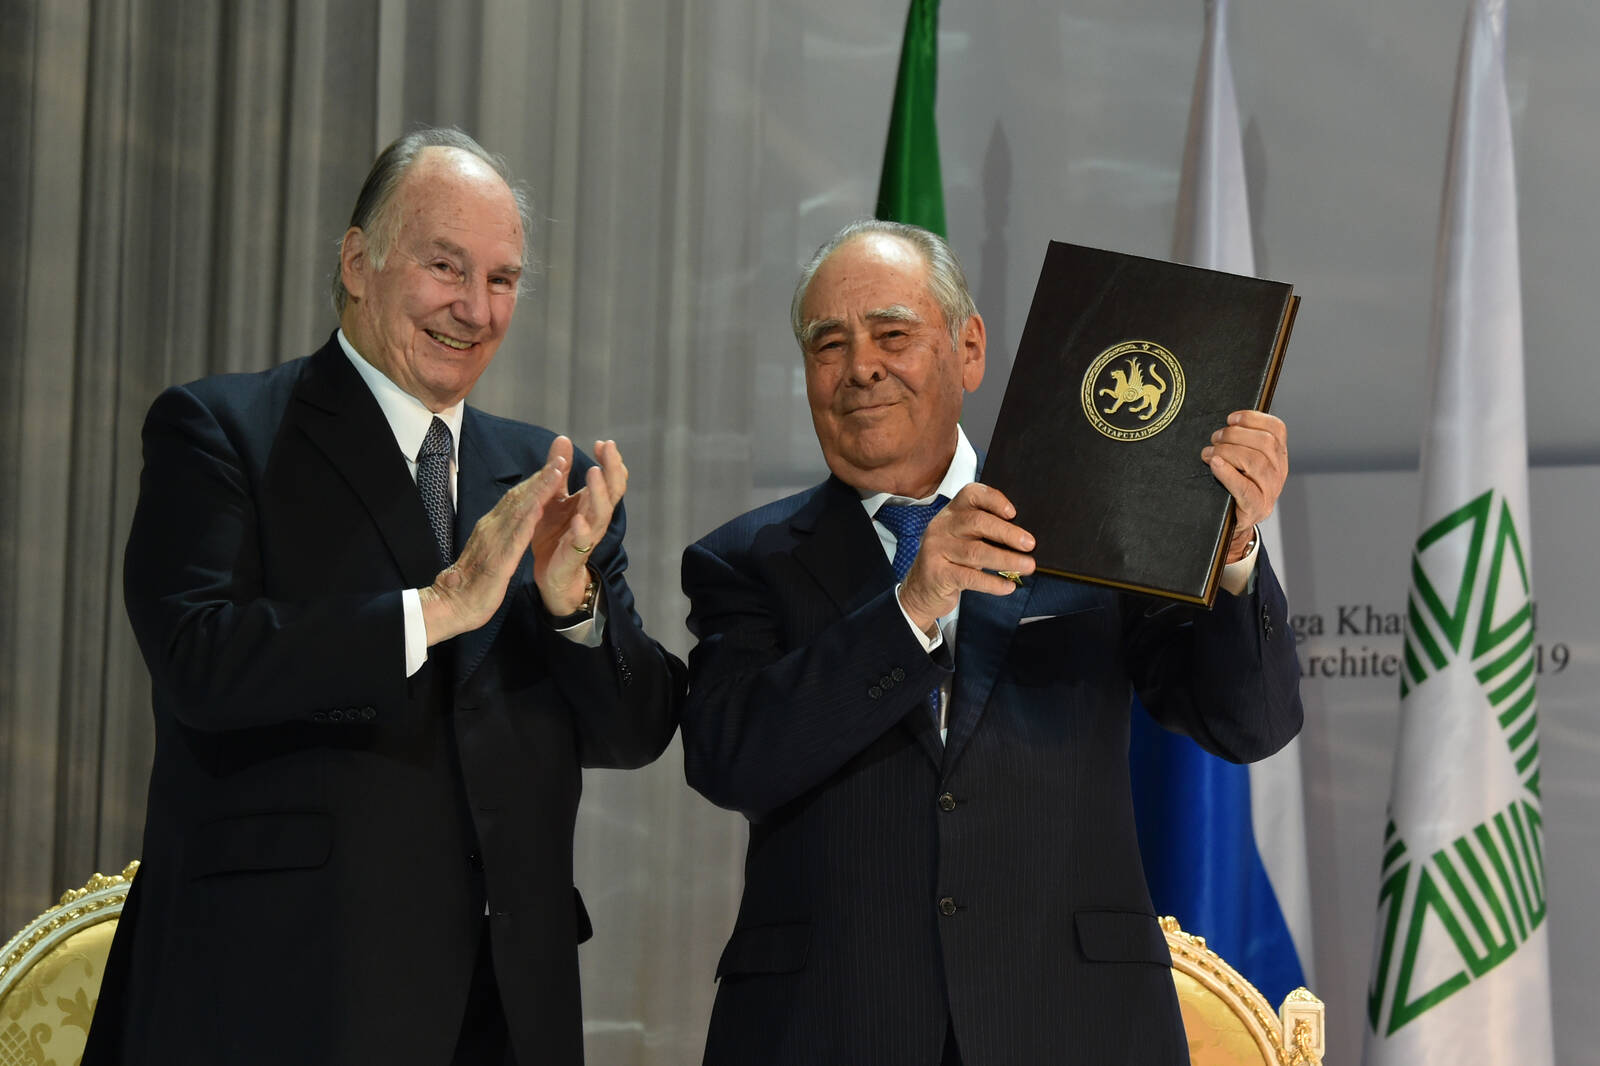 His Highness the Aga Khan and Mintimer Shaimiev,